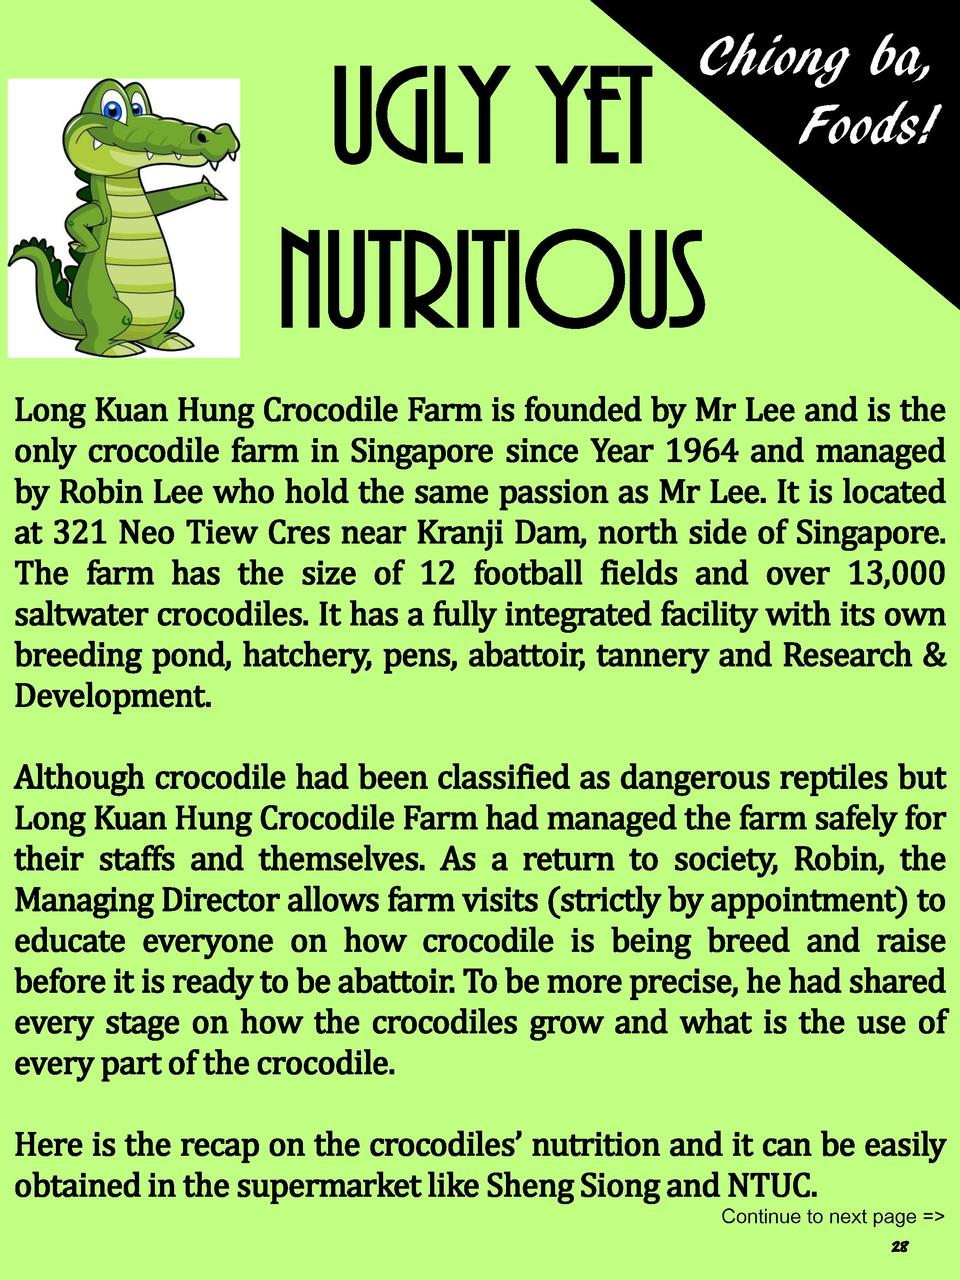 Chiong ba, Foods   ugly yet nutritious  Long Kuan Hung Crocodile Farm is founded by Mr Lee and is the only crocodile farm ...